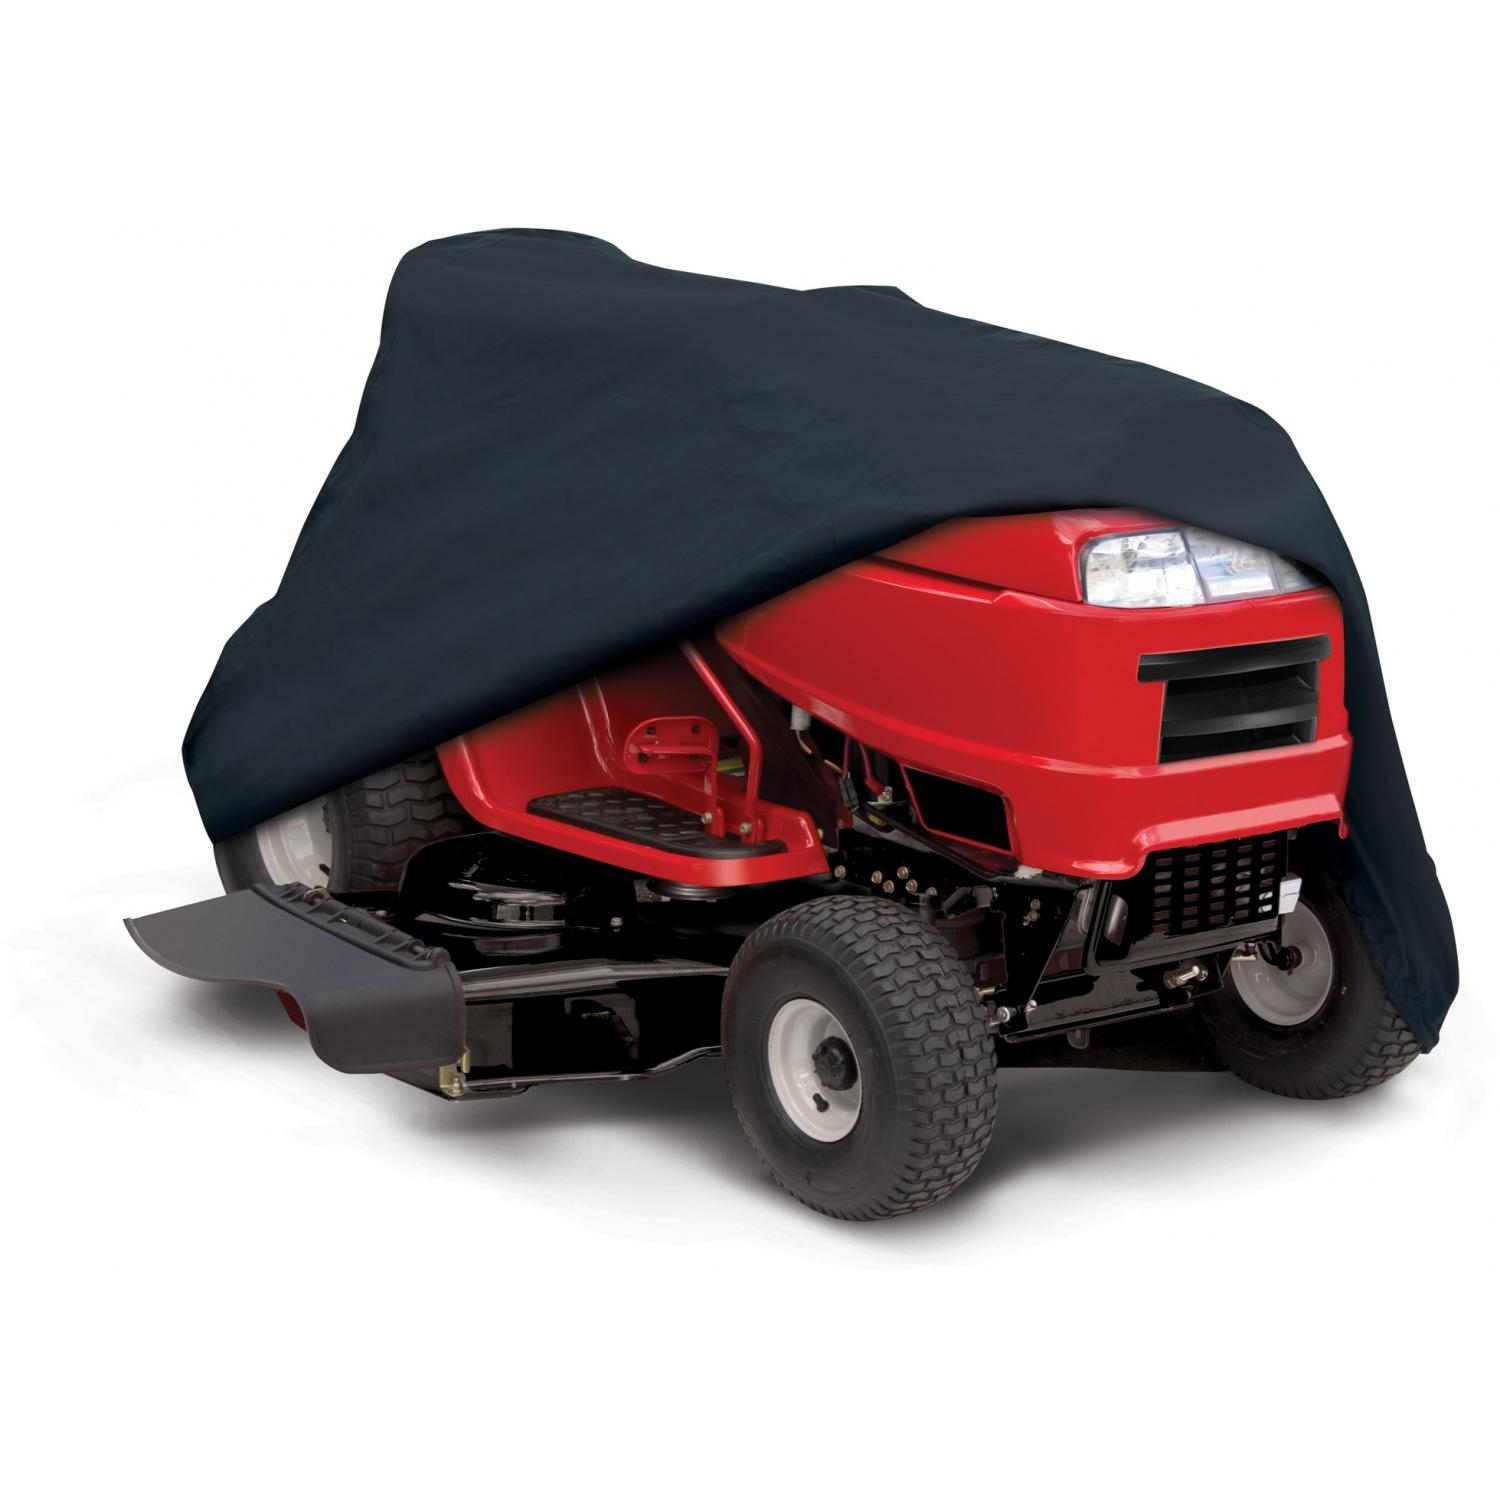 Classic Accessories Tractor Cover - Black